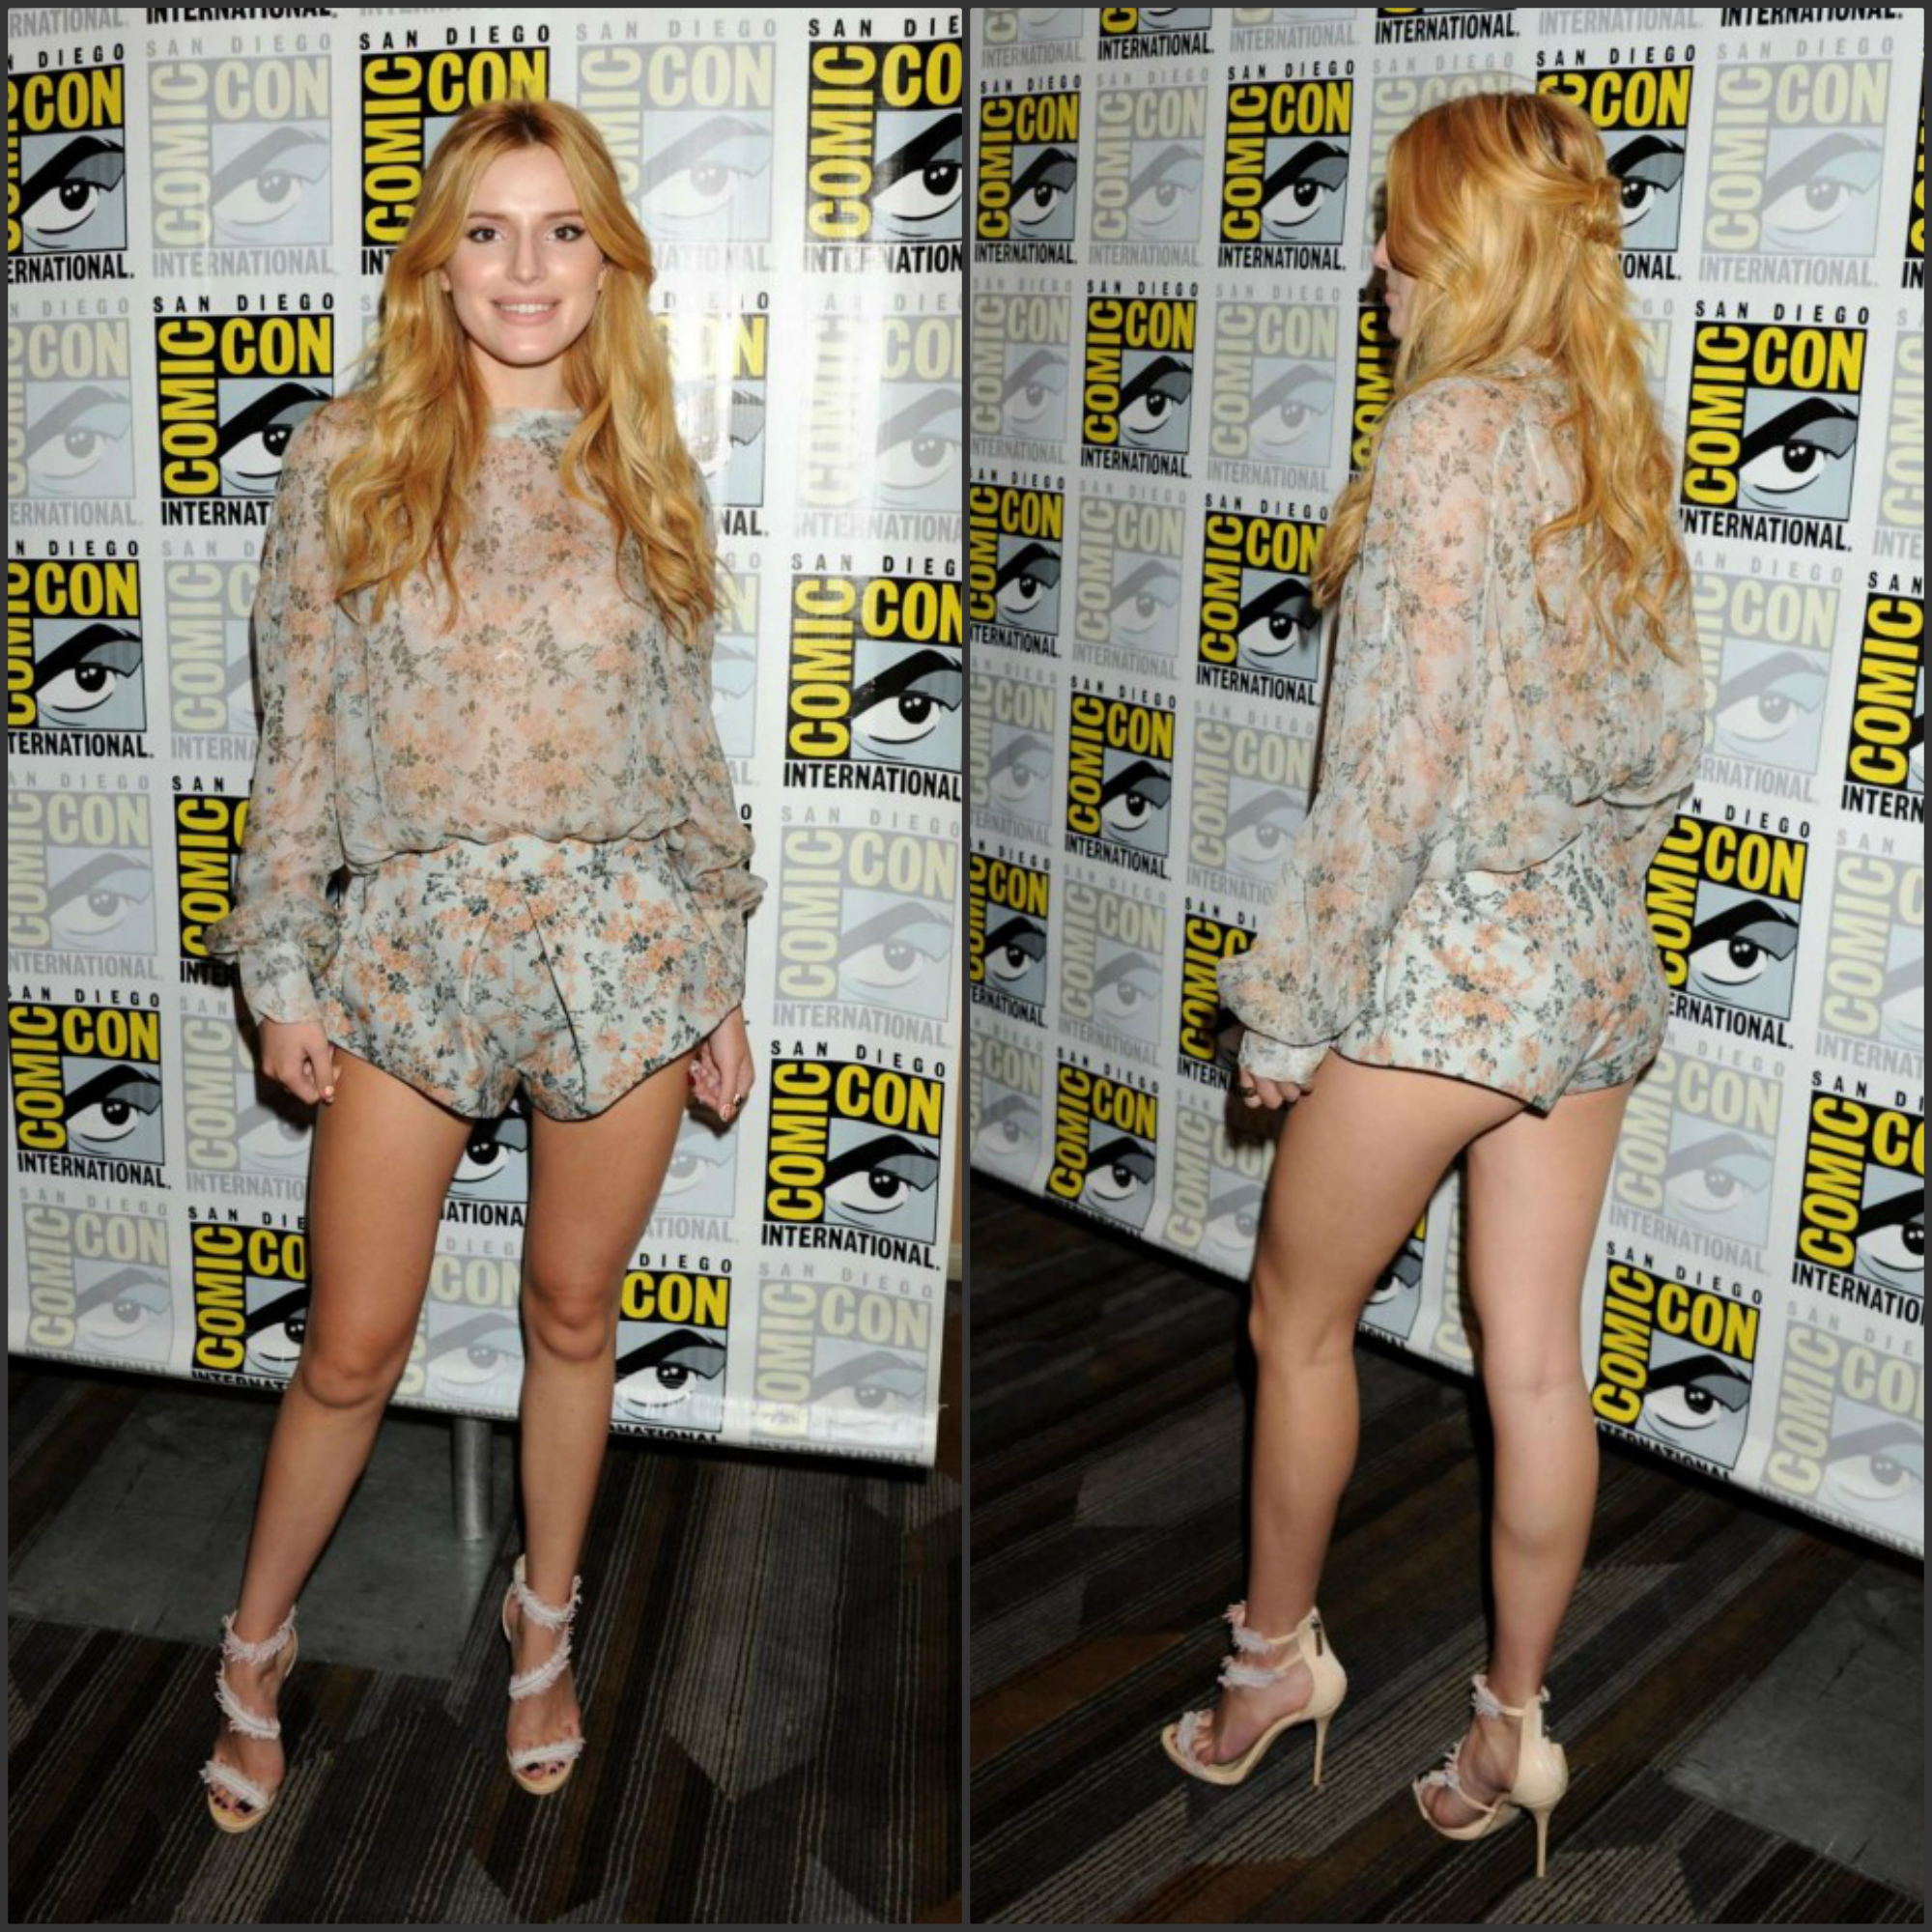 bella-thorne-in-vera-wang-scream-press-line-at-comic-con-san-diego